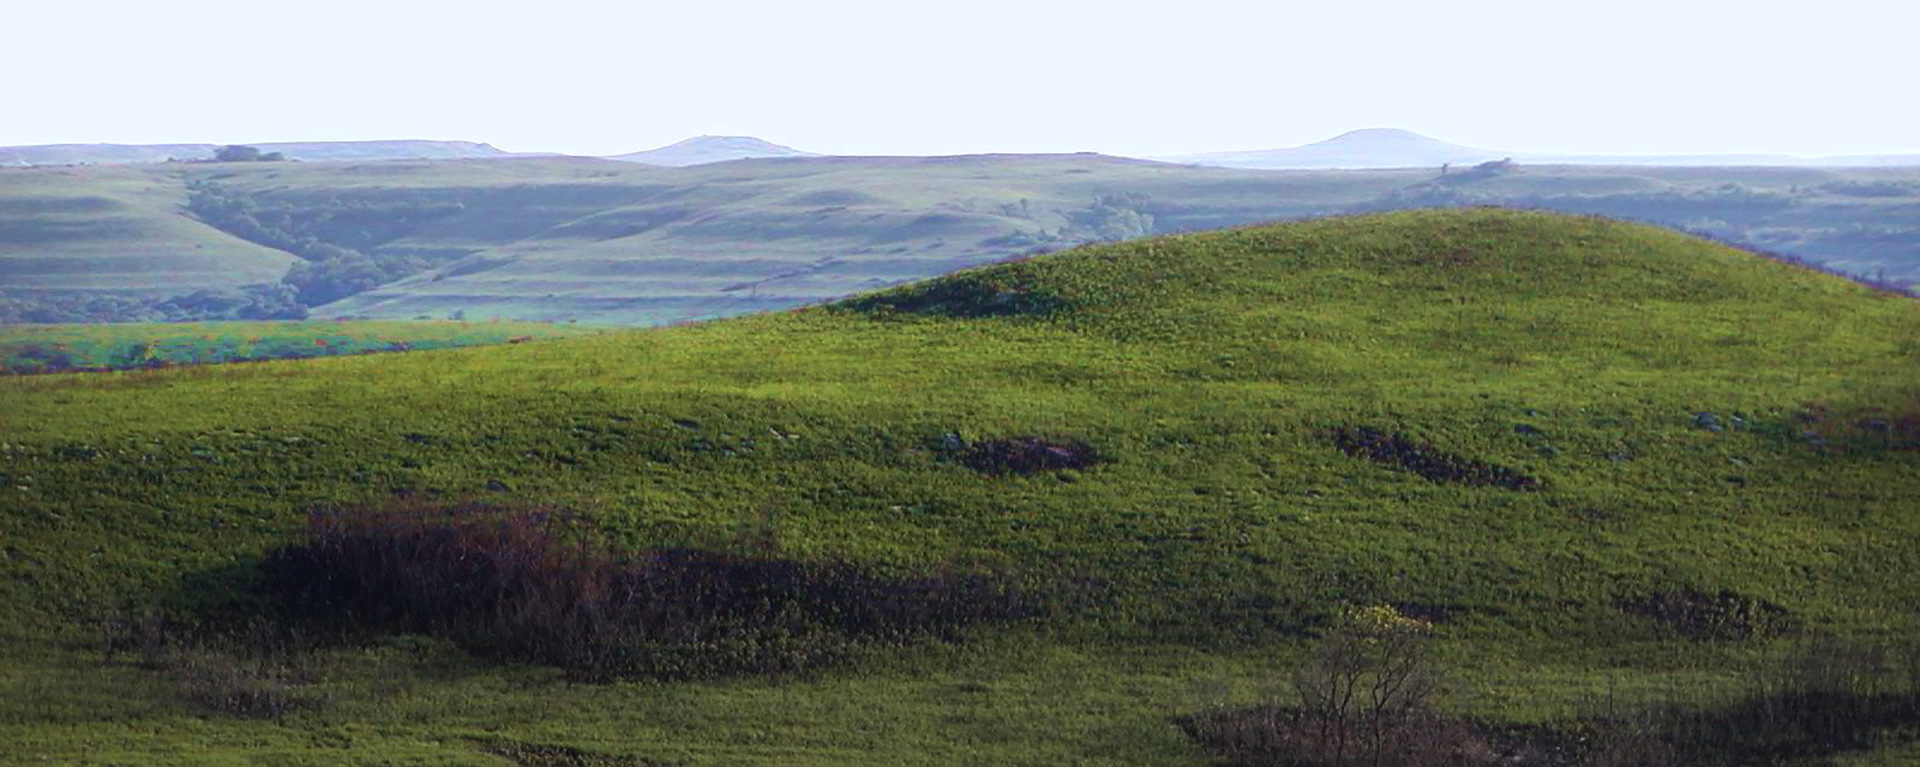 Flint Hills Near Manhattan